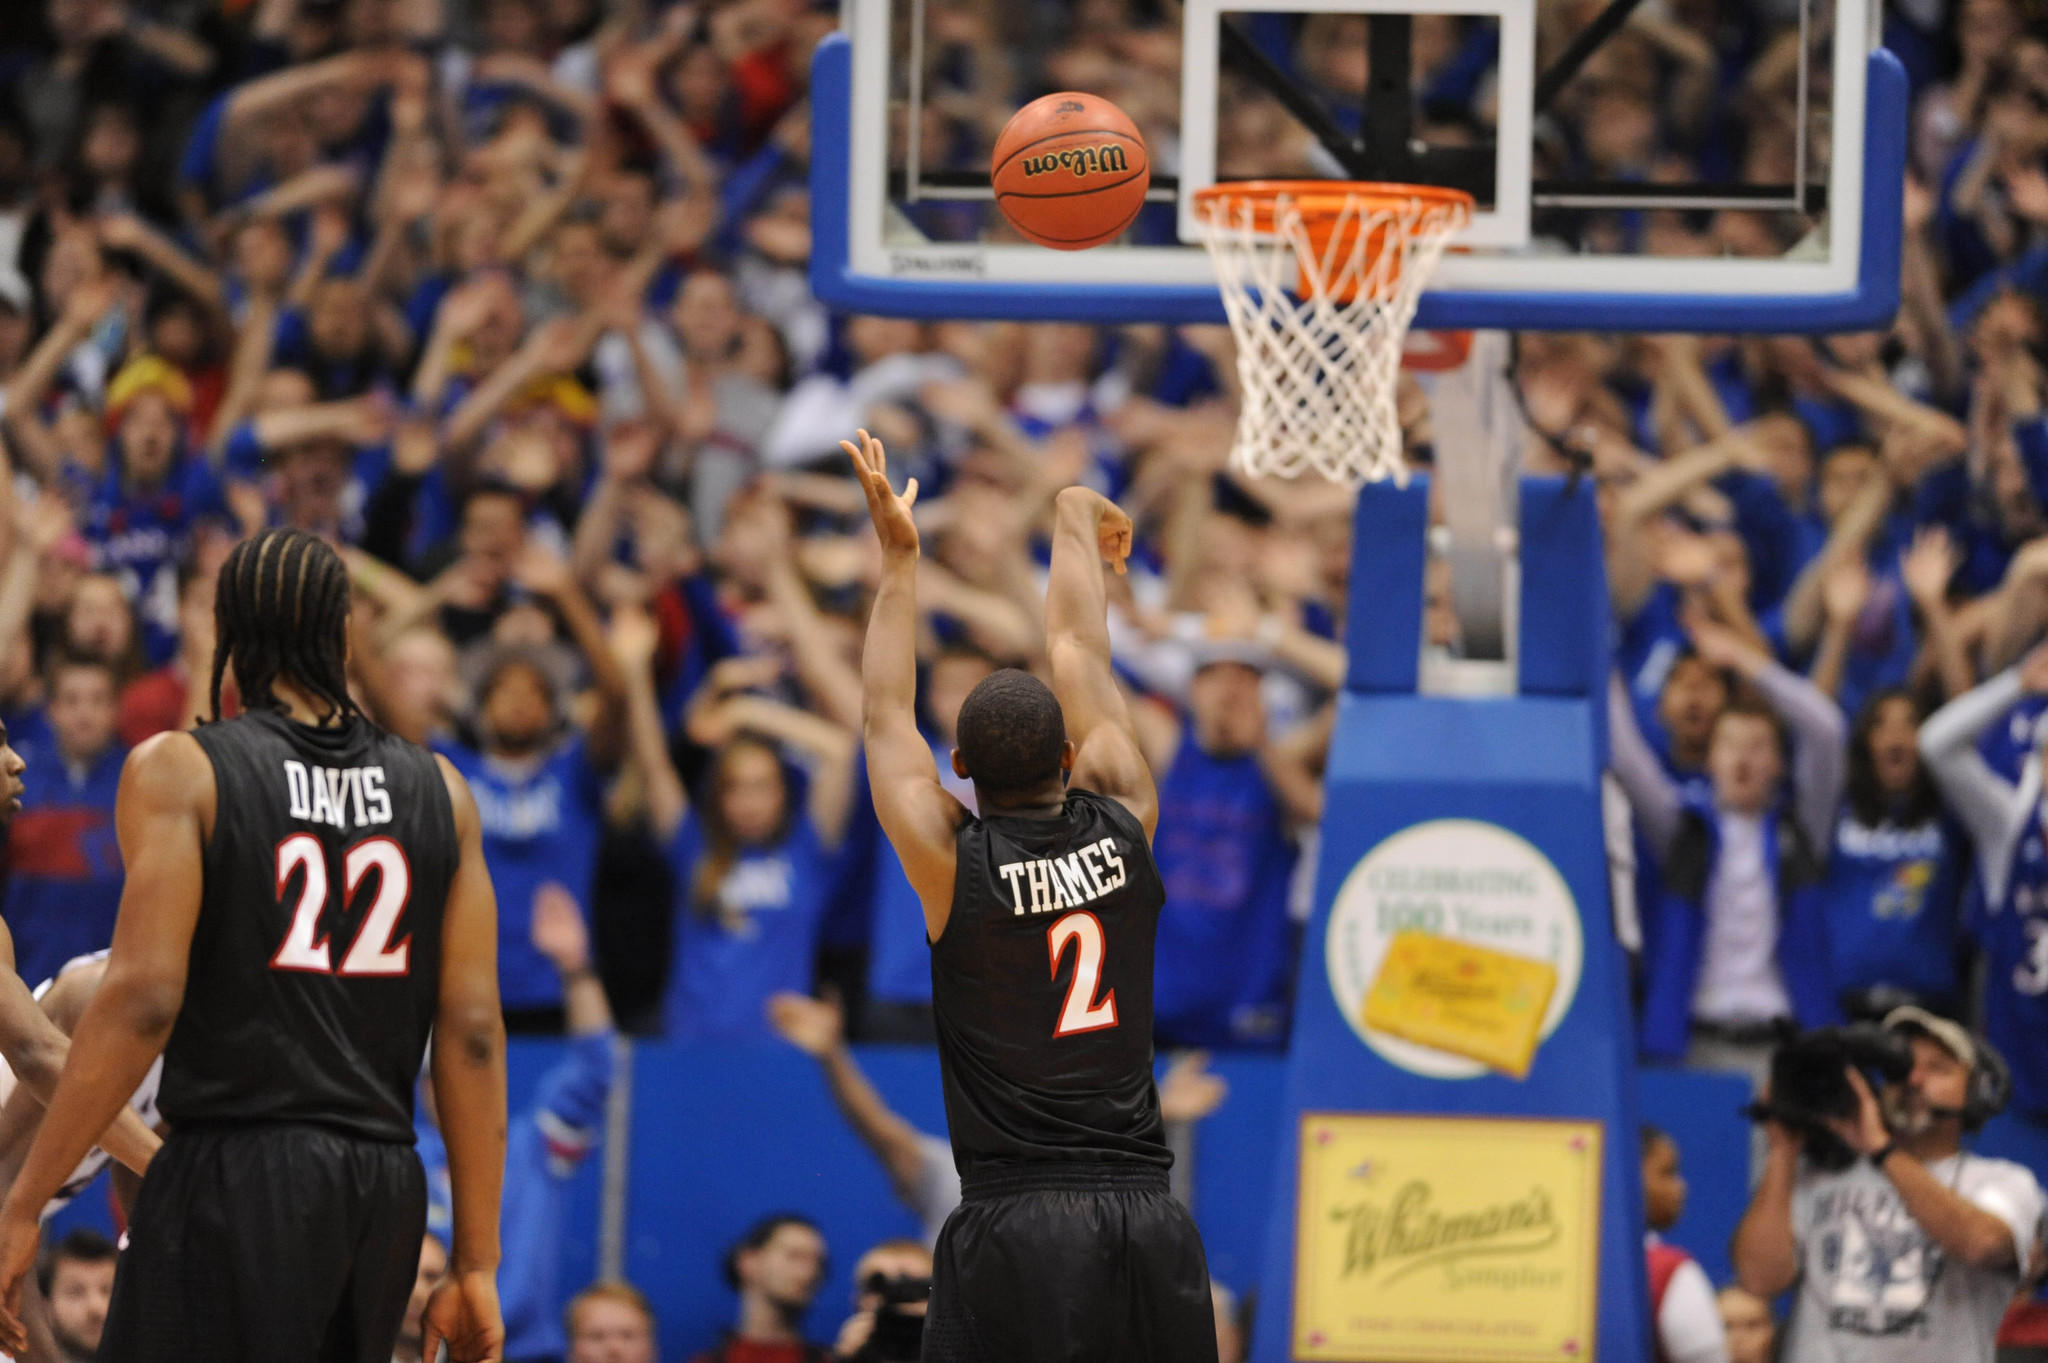 San Diego State's Xavier Thames makes a free-throw during the second half against Kansas at Allen Fieldhouse.